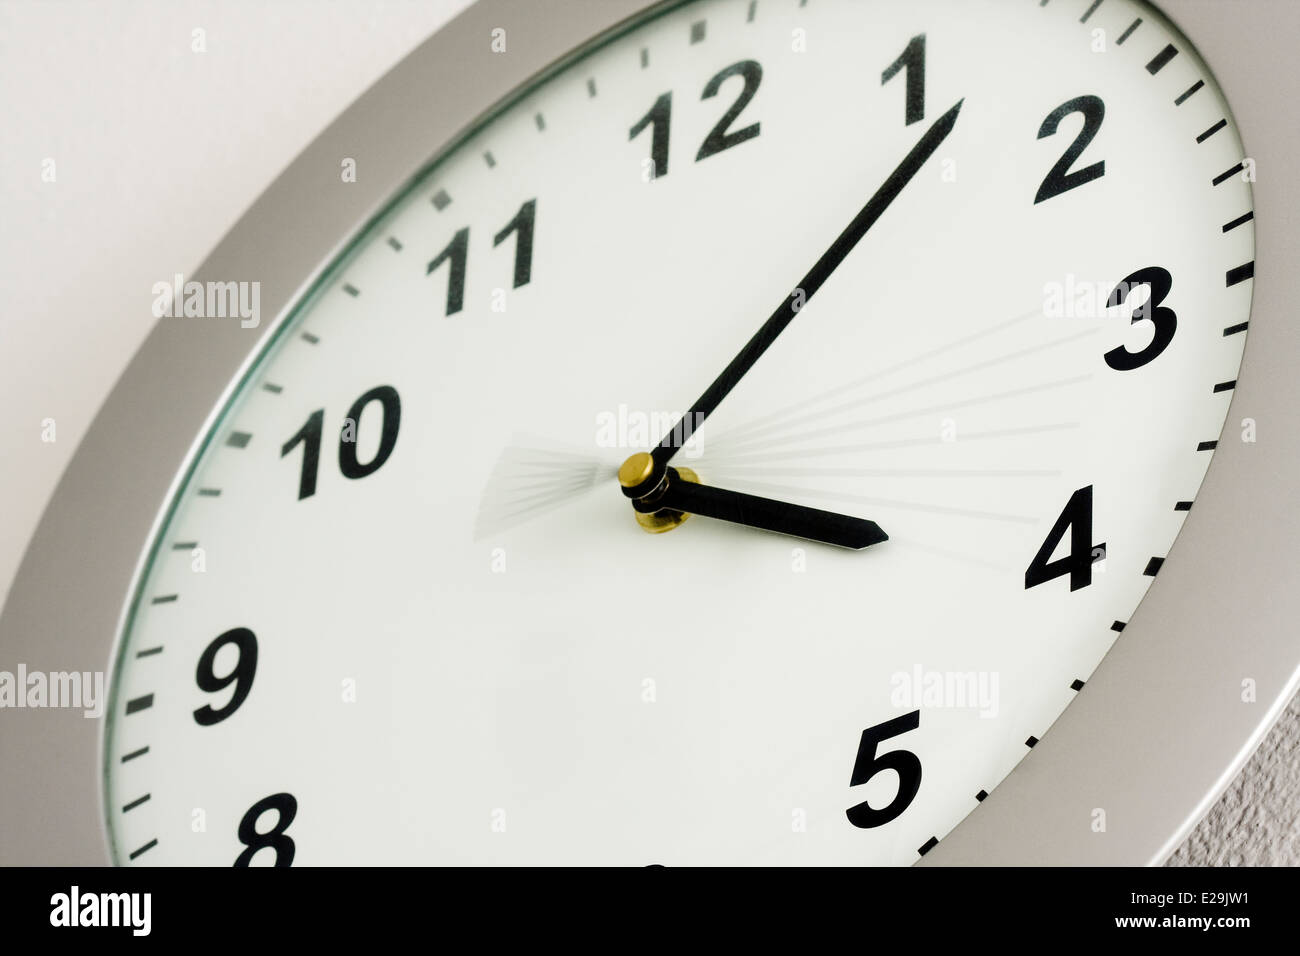 The time of 4:08 showing on a white analog clock face depicting the passing of 6 seconds by the movement of the - Stock Image